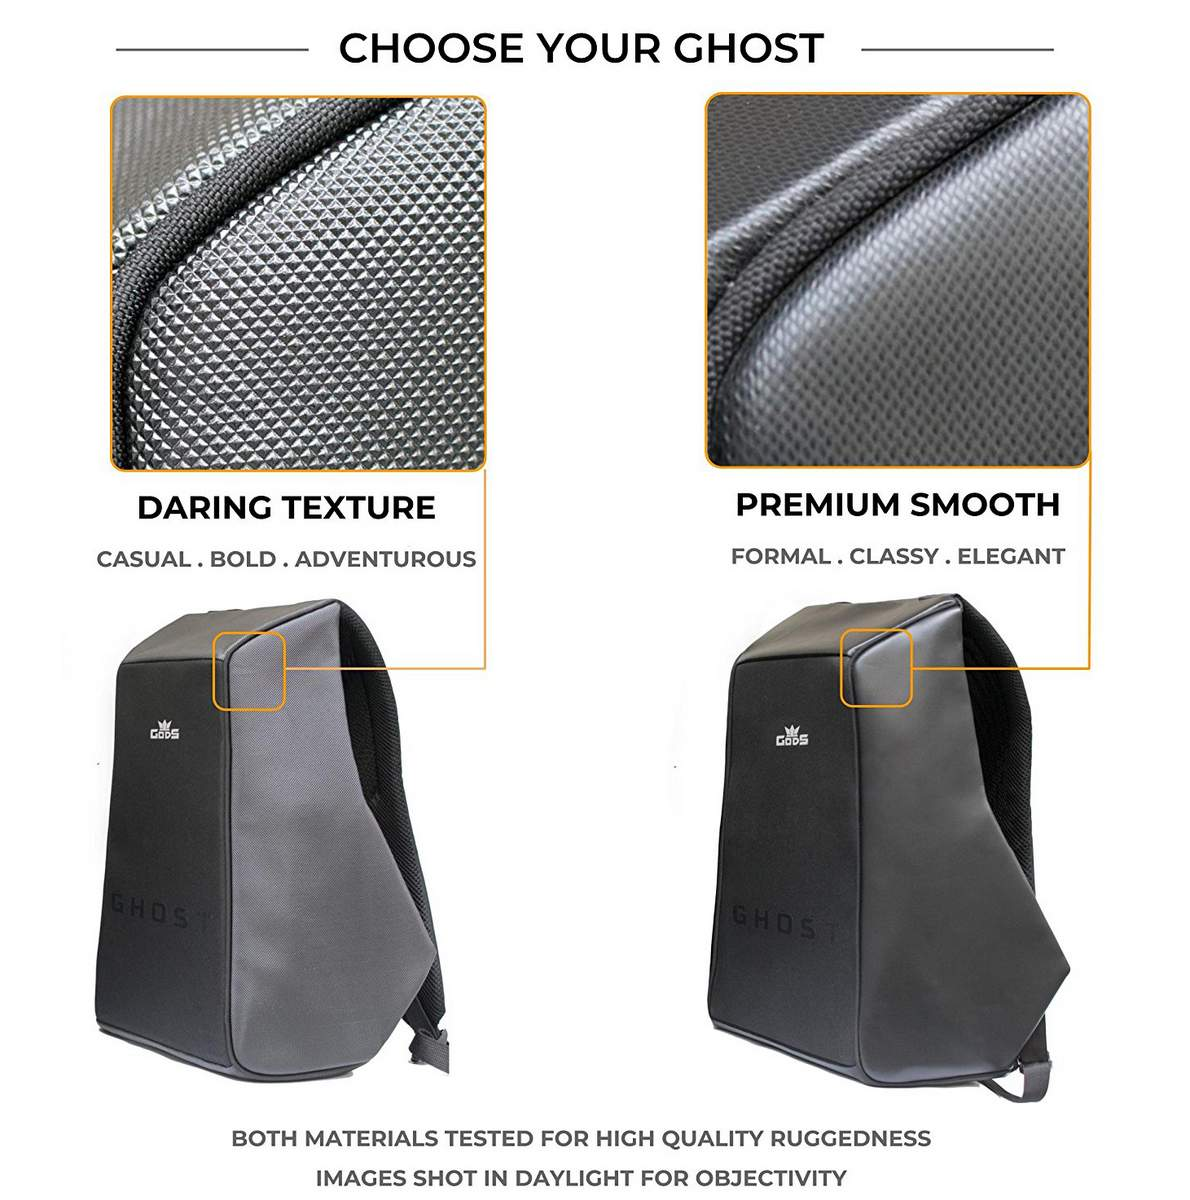 Road Gods The Ghost Premium Smooth Minimalist Anti Theft Laptop Backpack 8f1dbfc78674a